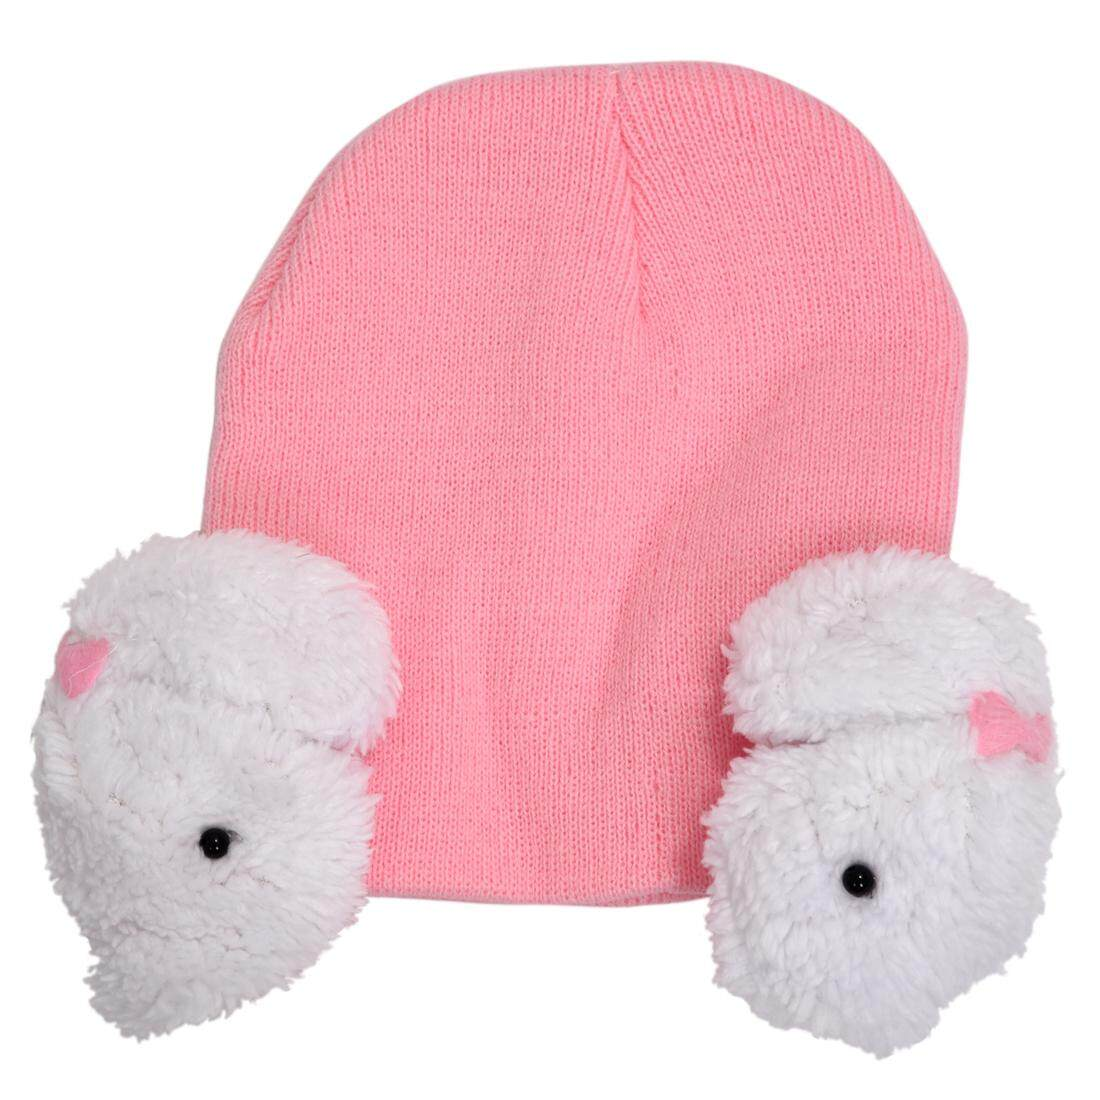 f4e82464e97 Baby Toddler Kids Boys Girl Winter Ear Flap Warm Hat Beanie Cap Crochet  Rabbit Pink